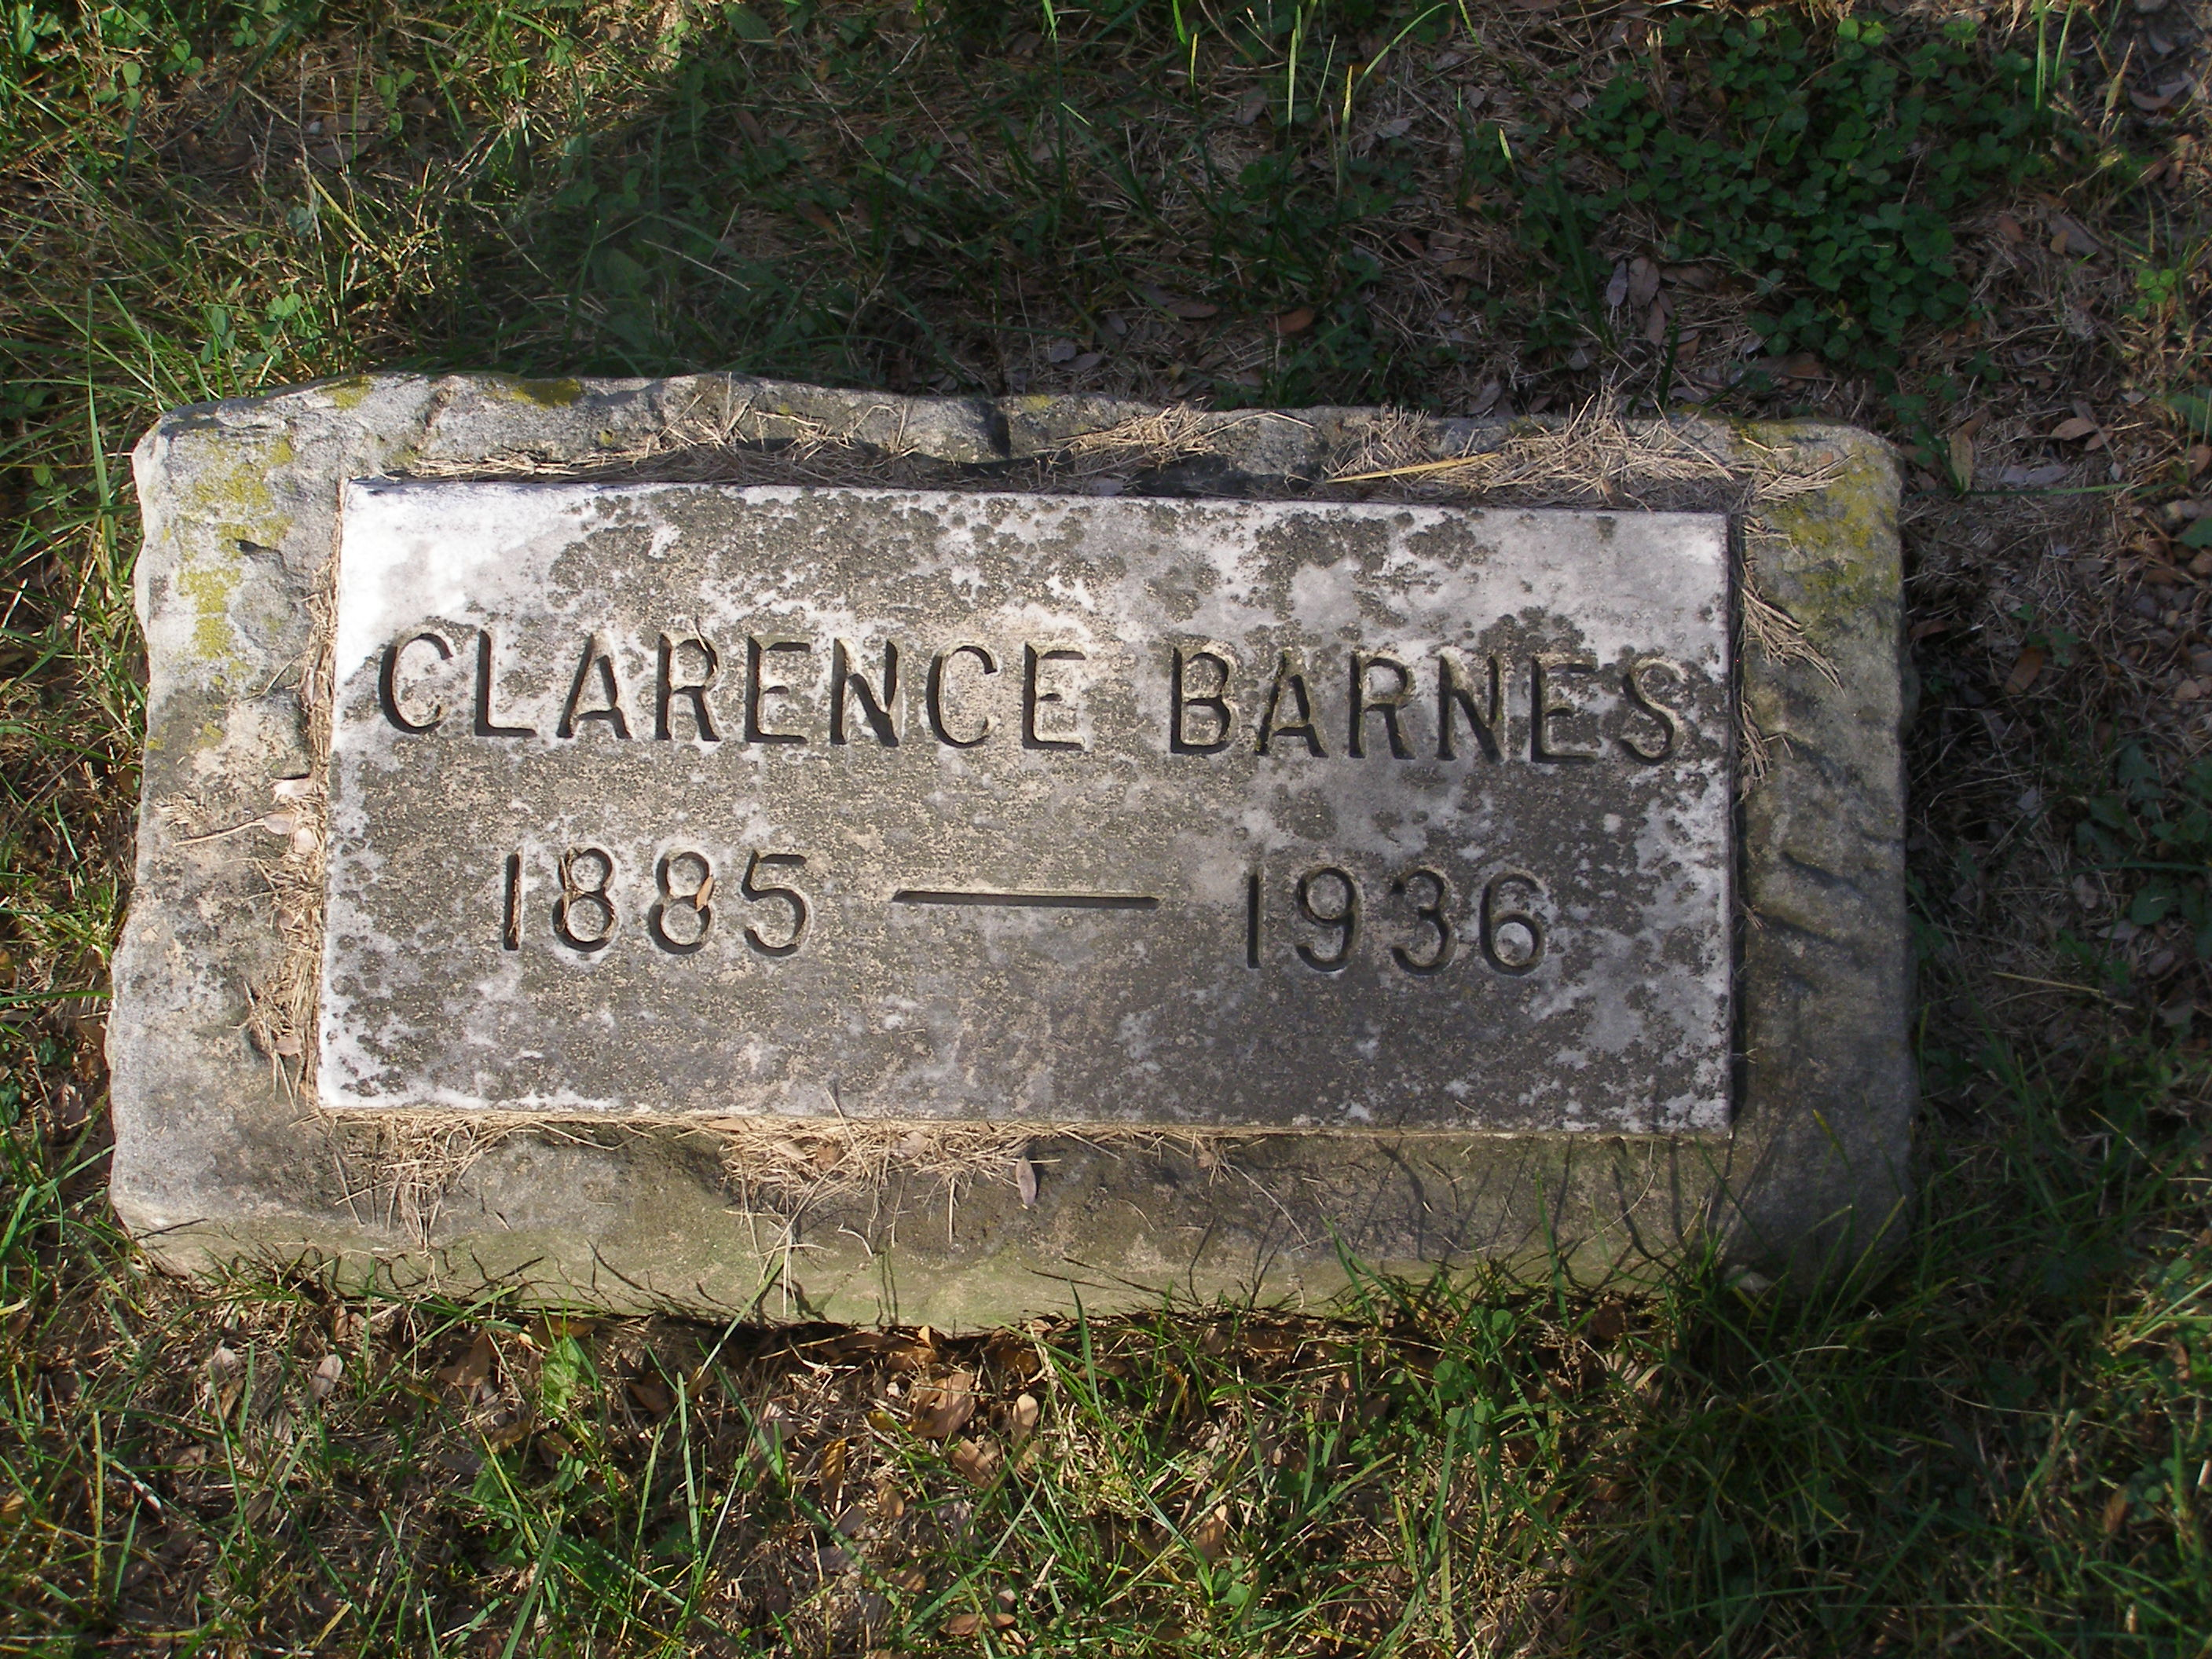 Clarence Barnes